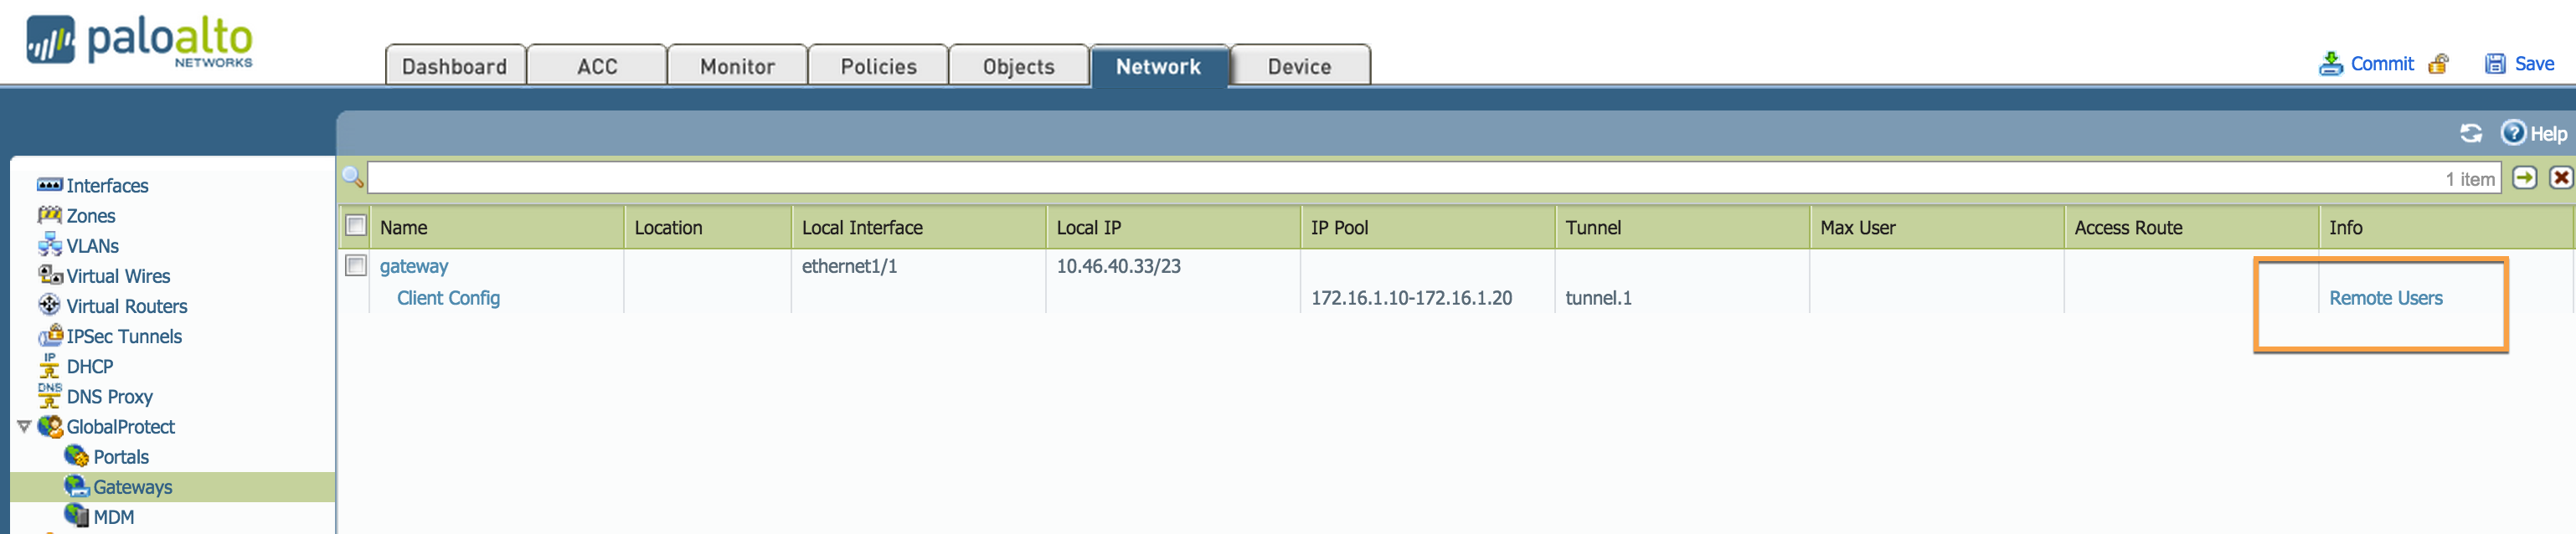 Palo Alto Networks Knowledgebase: How to List Current or